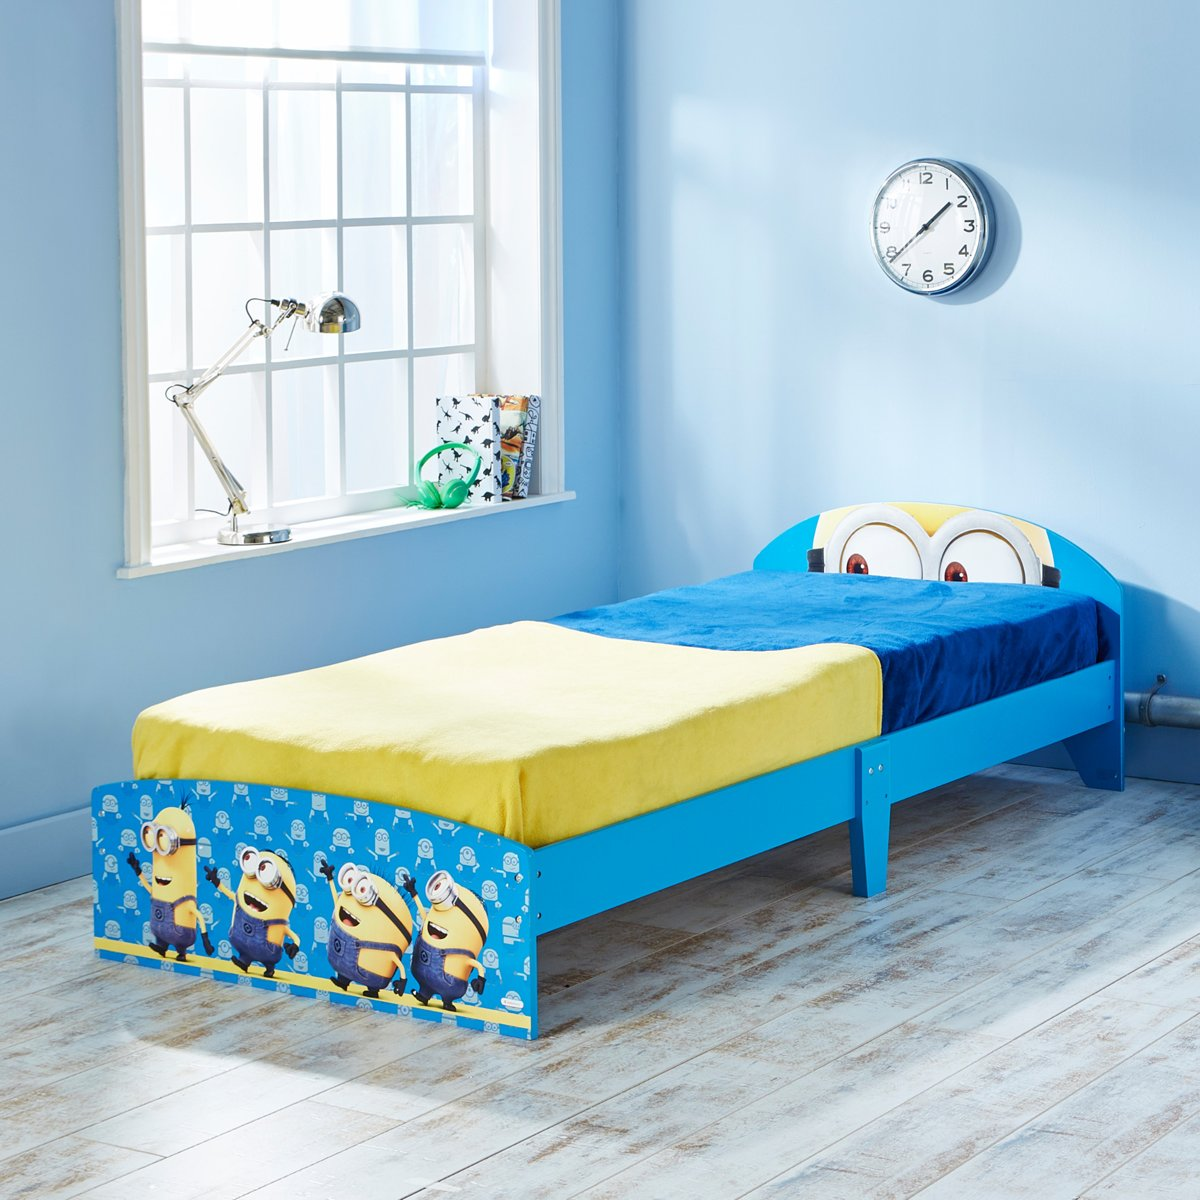 1 Persoonsbed Jongen Bol Minions Bed 1 Persoons